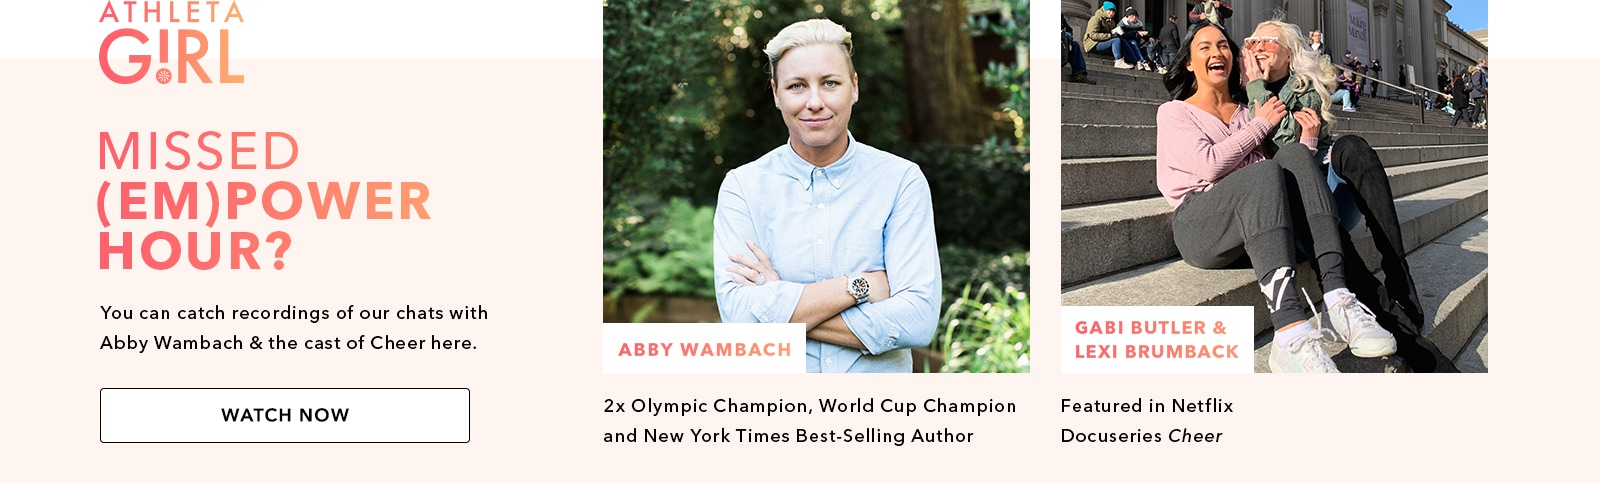 images of Abby wambach 2x Olympics champion, world cup champion and NYT best selling author. Gabi Butler and lexi brumback